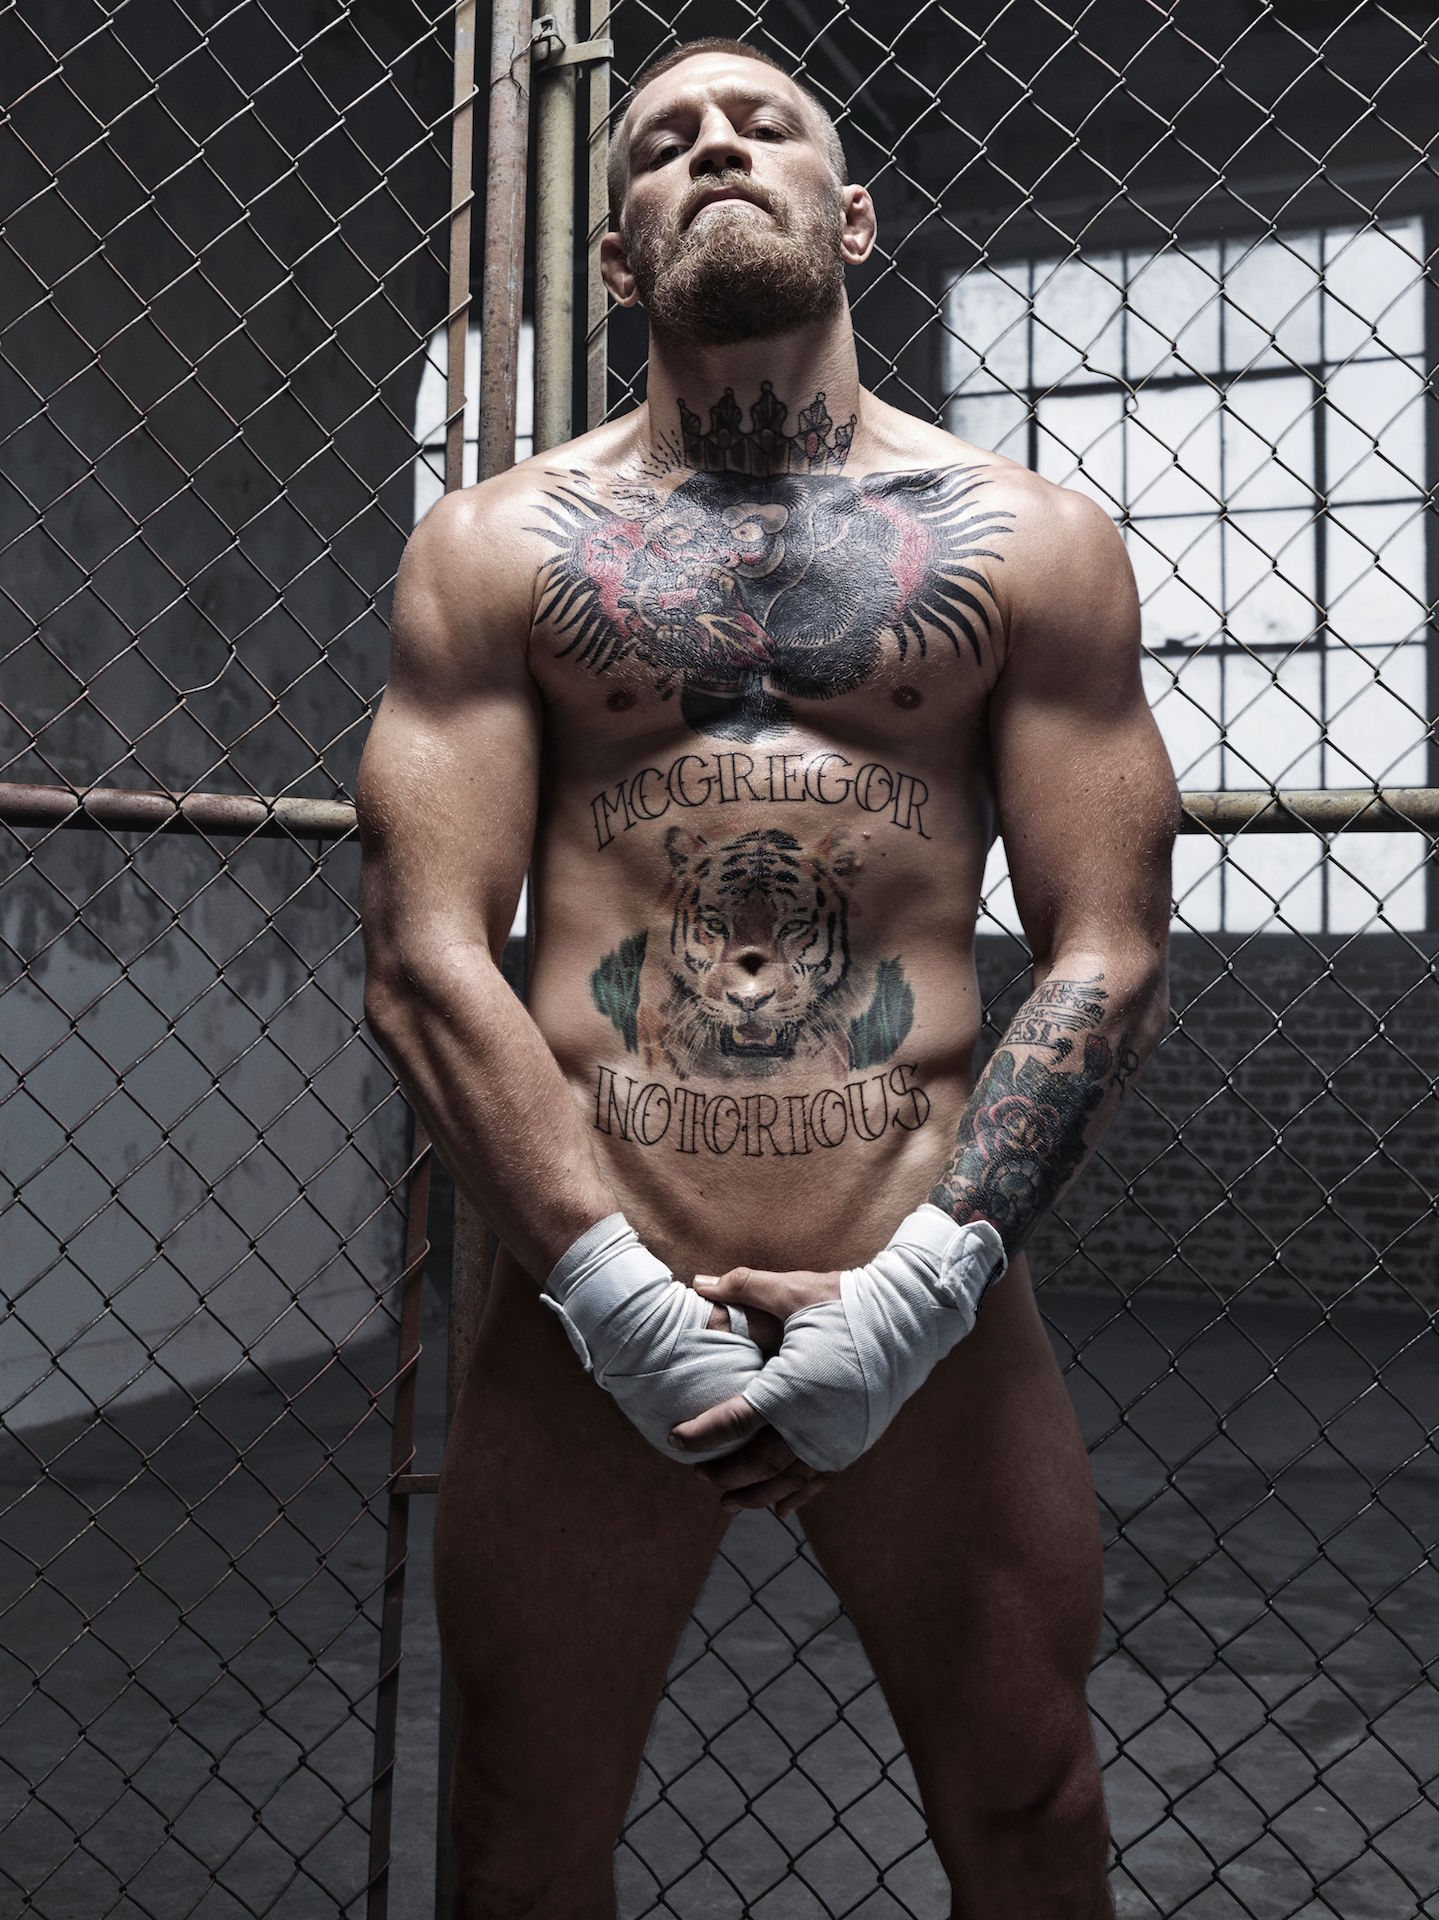 Athlete Conor McGregor. (Photographed by Mark Seliger for ESPN Body Issue 2016)